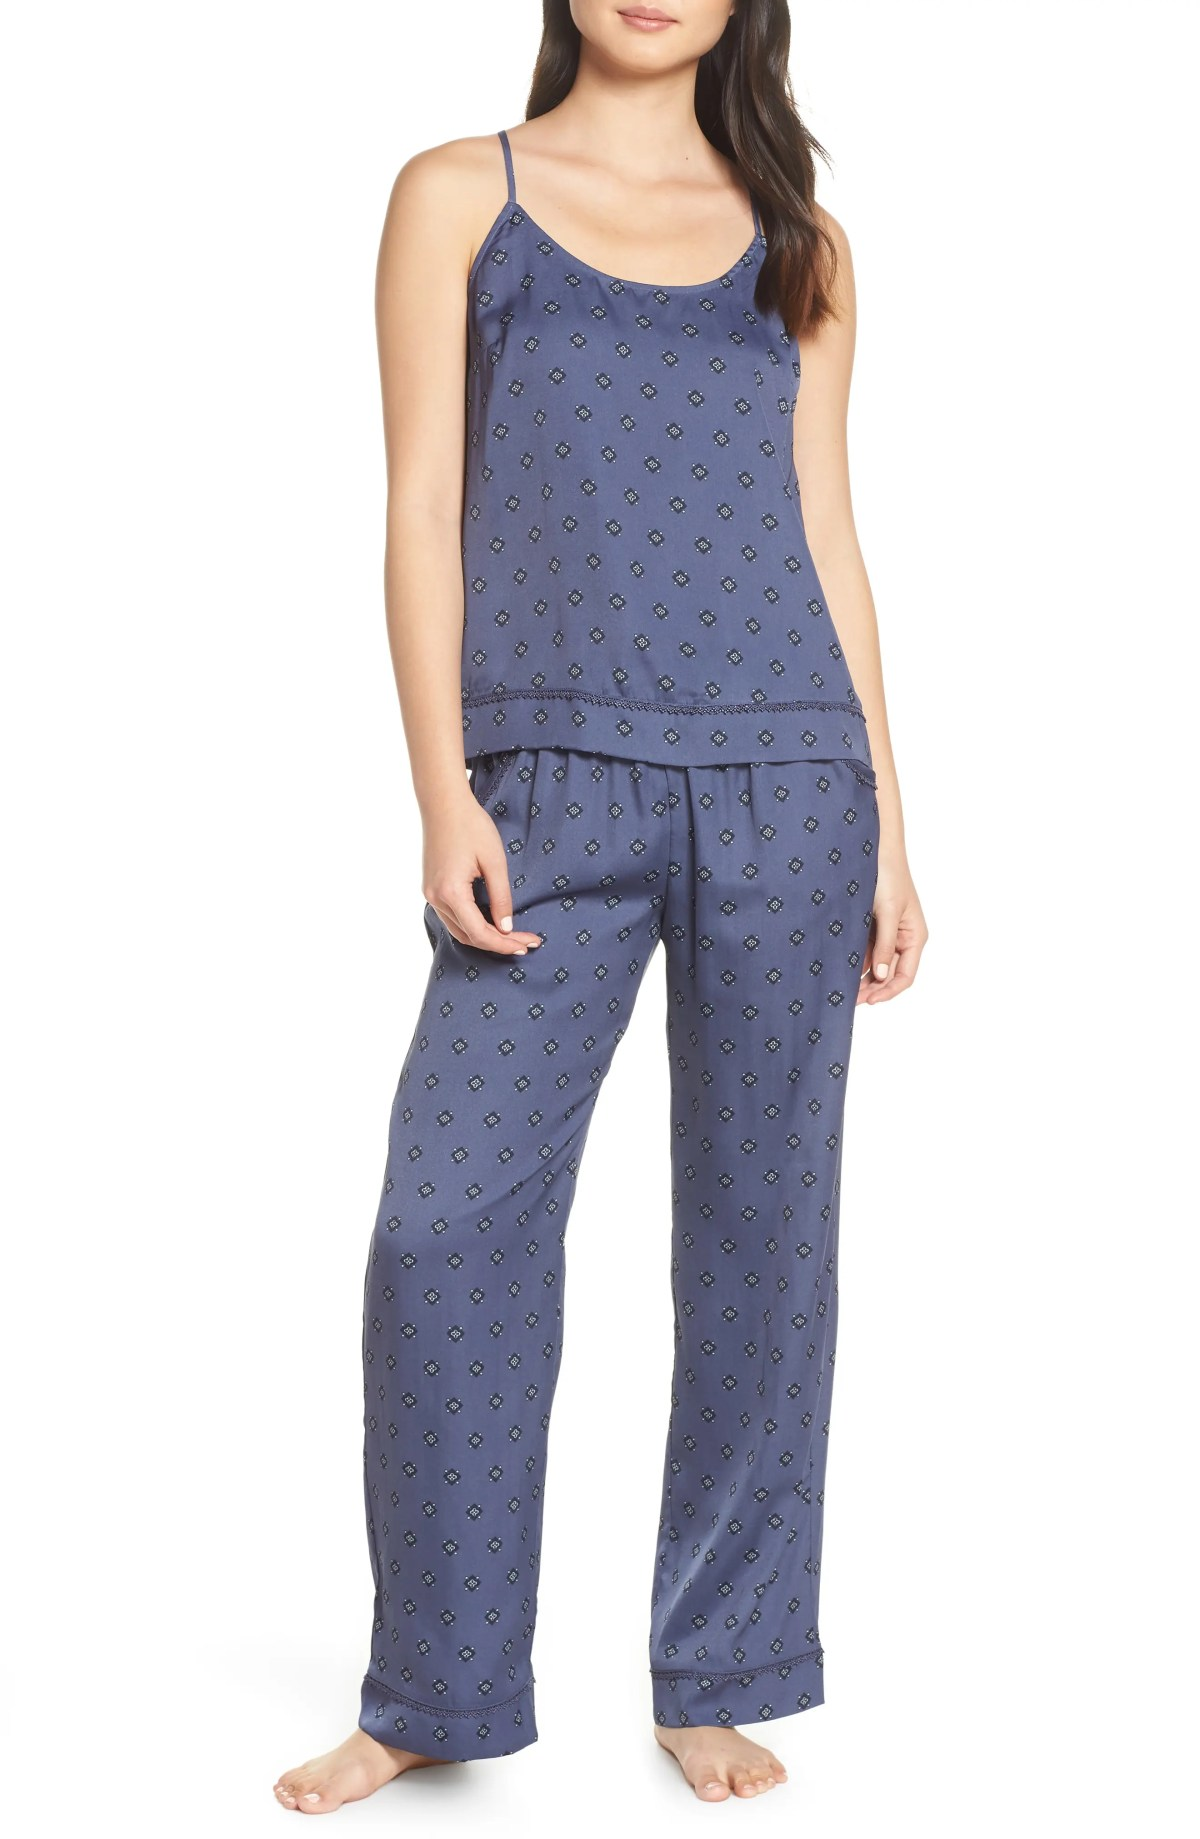 Sweet Dreams Satin Pajamas, Main, color, BLUE SHADOW GALE FOULARD